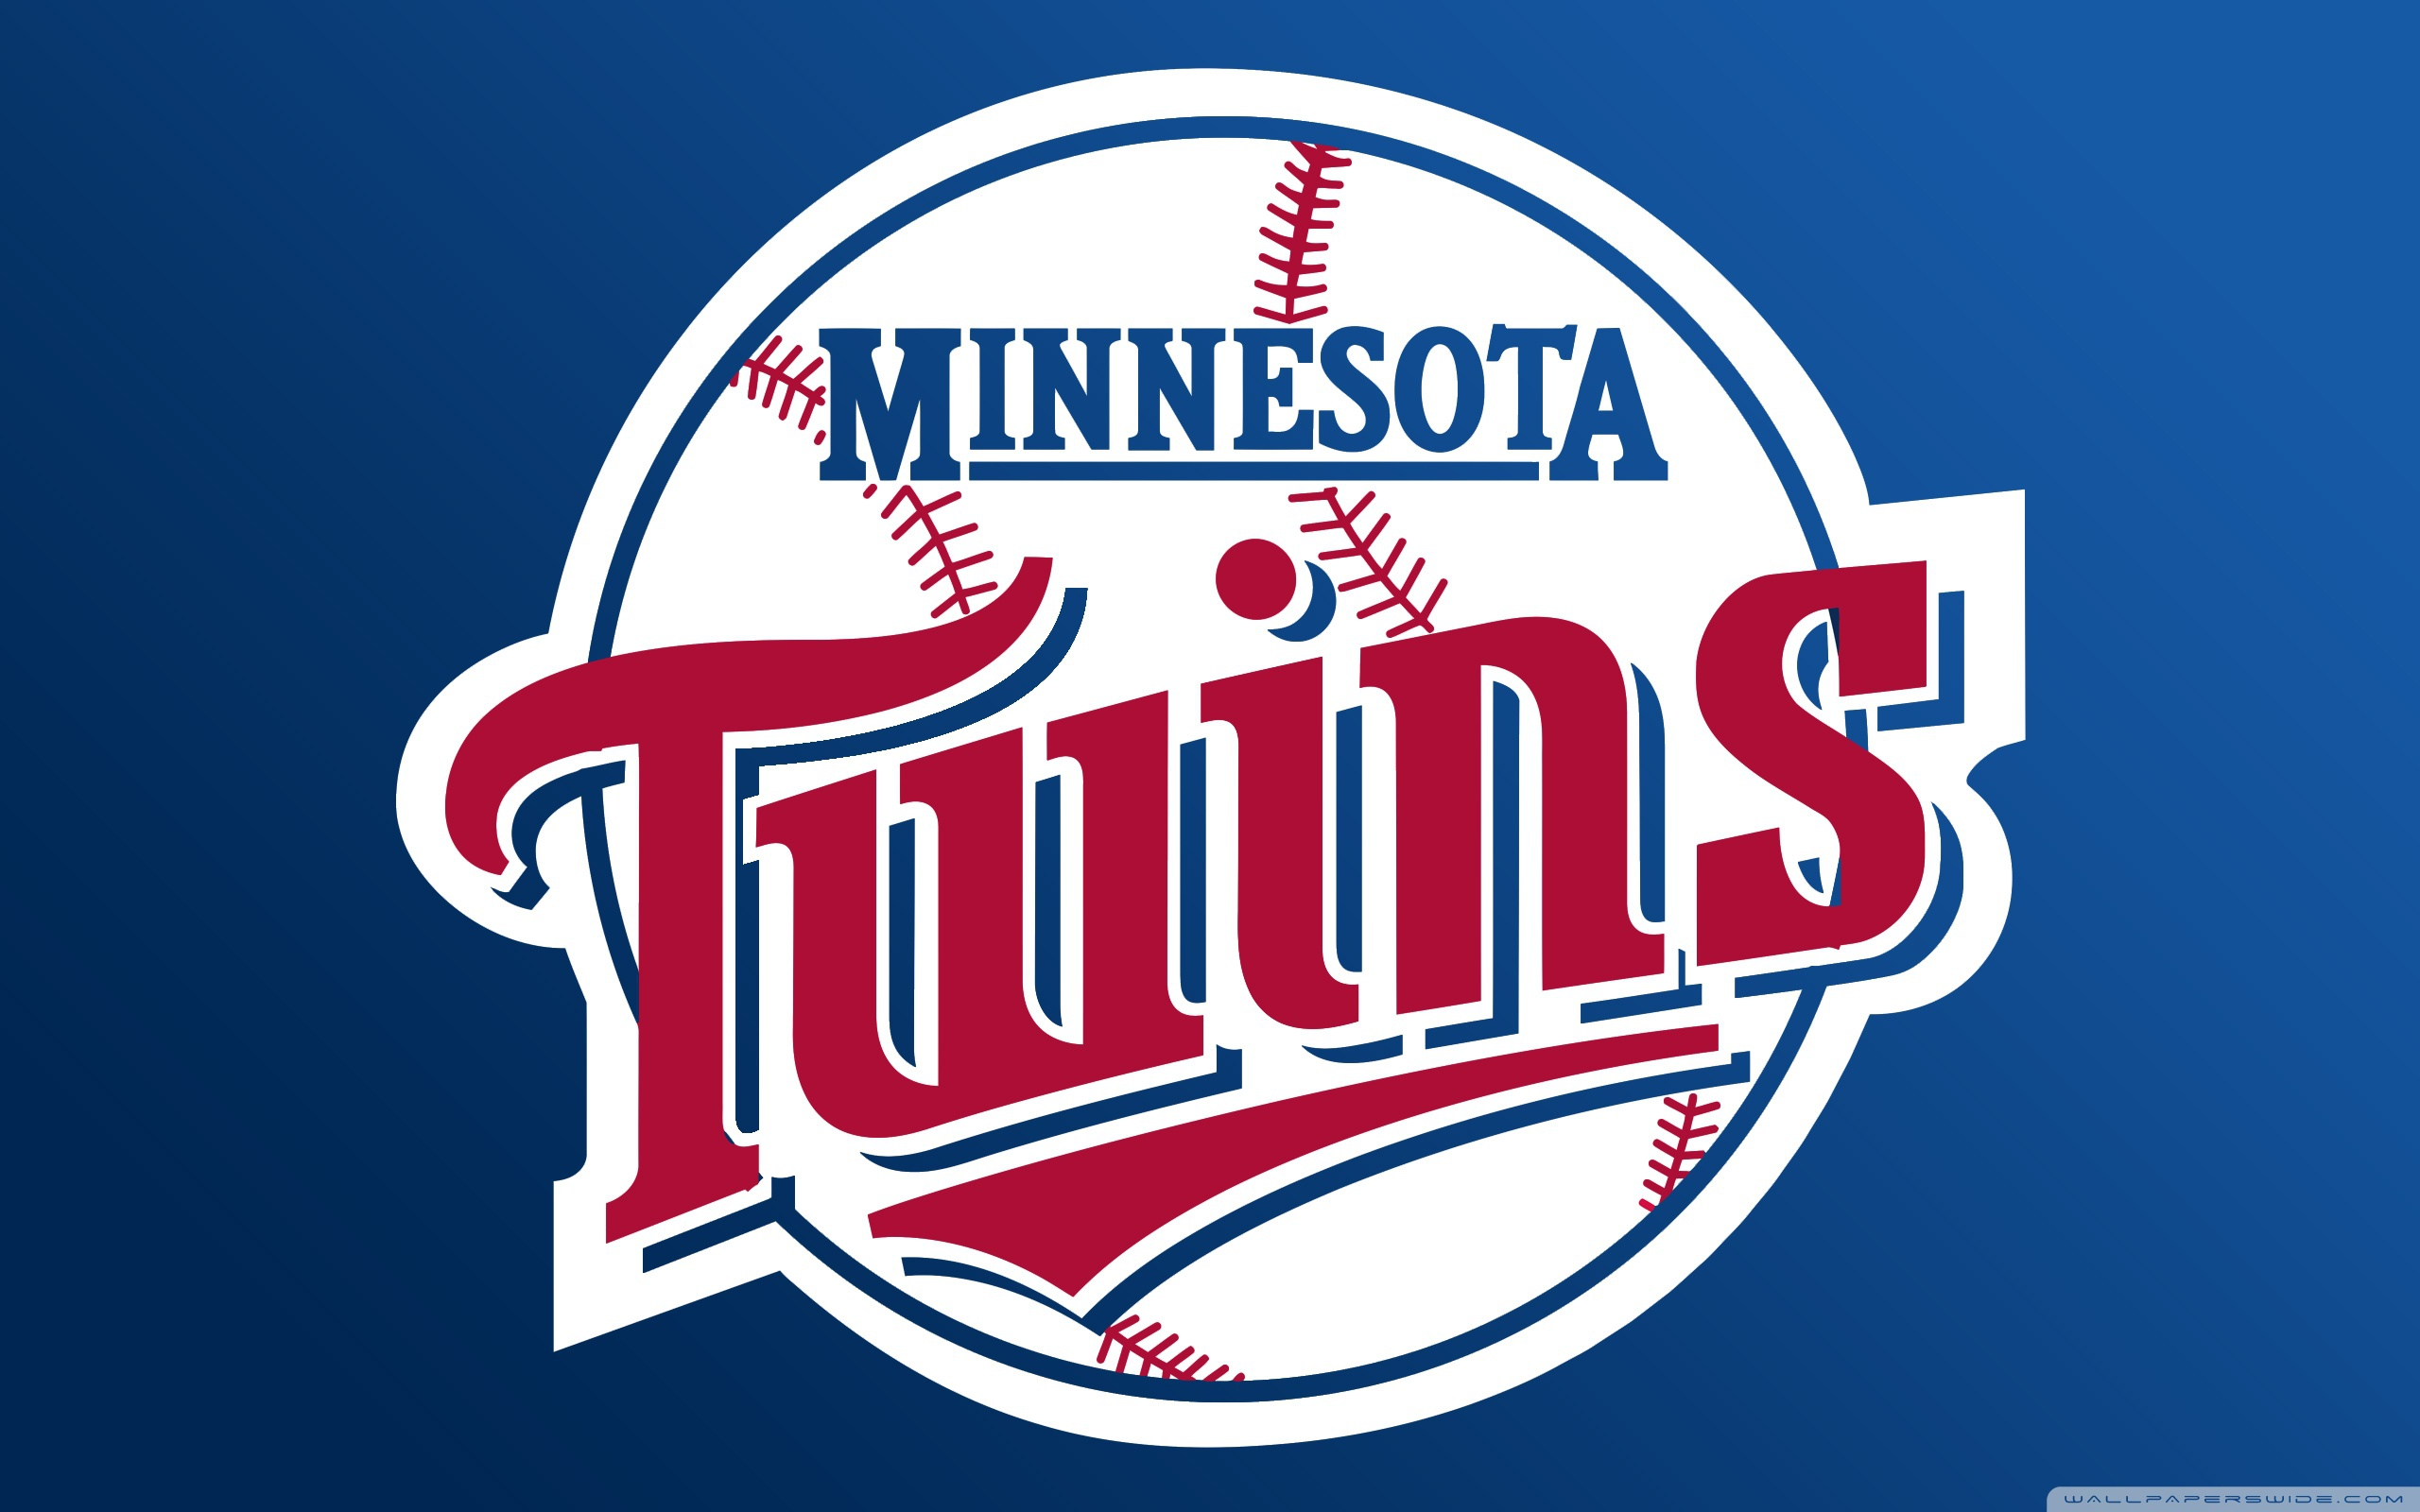 Minnesota Twins logo Club wallpapers and images   wallpapers pictures 2560x1600